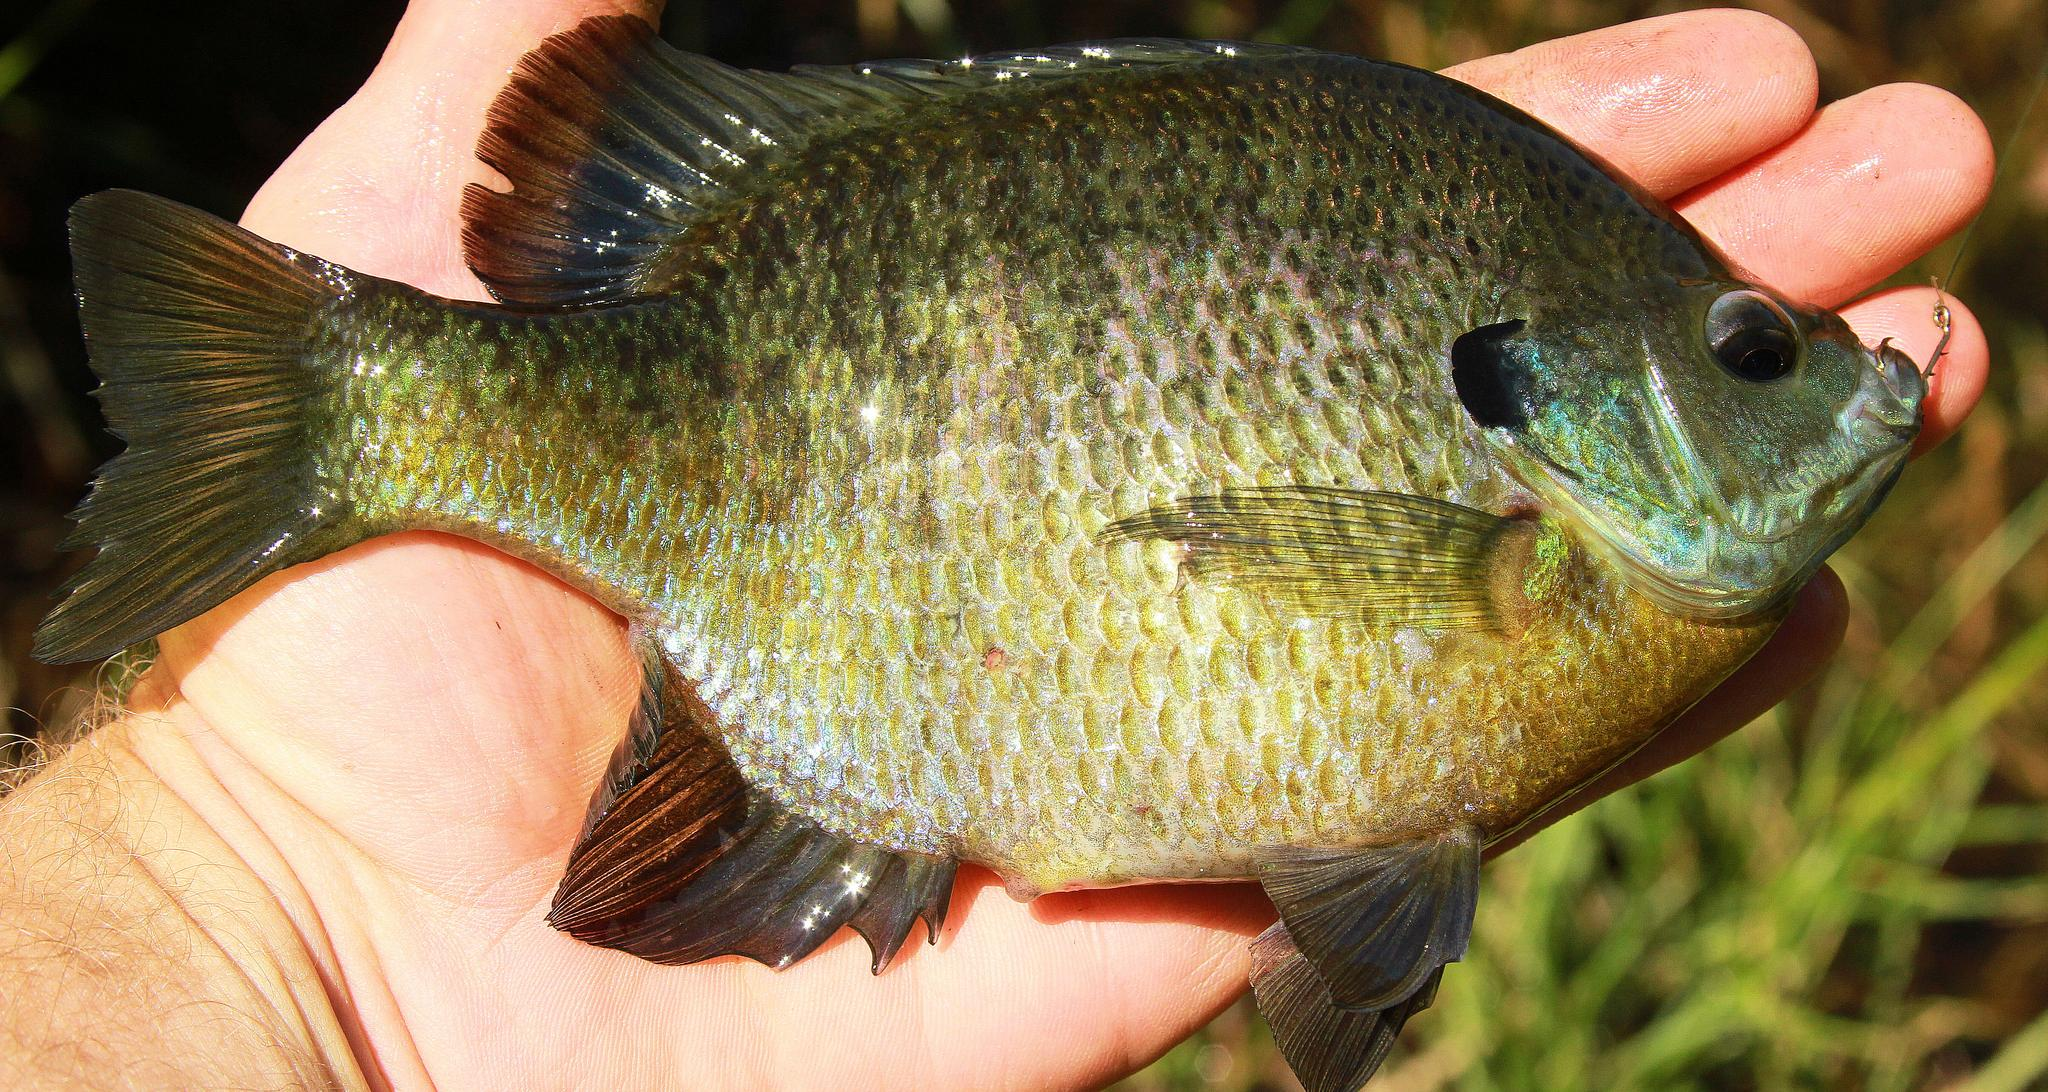 FACT CHECK: Bluegills Are Dangerous and Related to Piranha